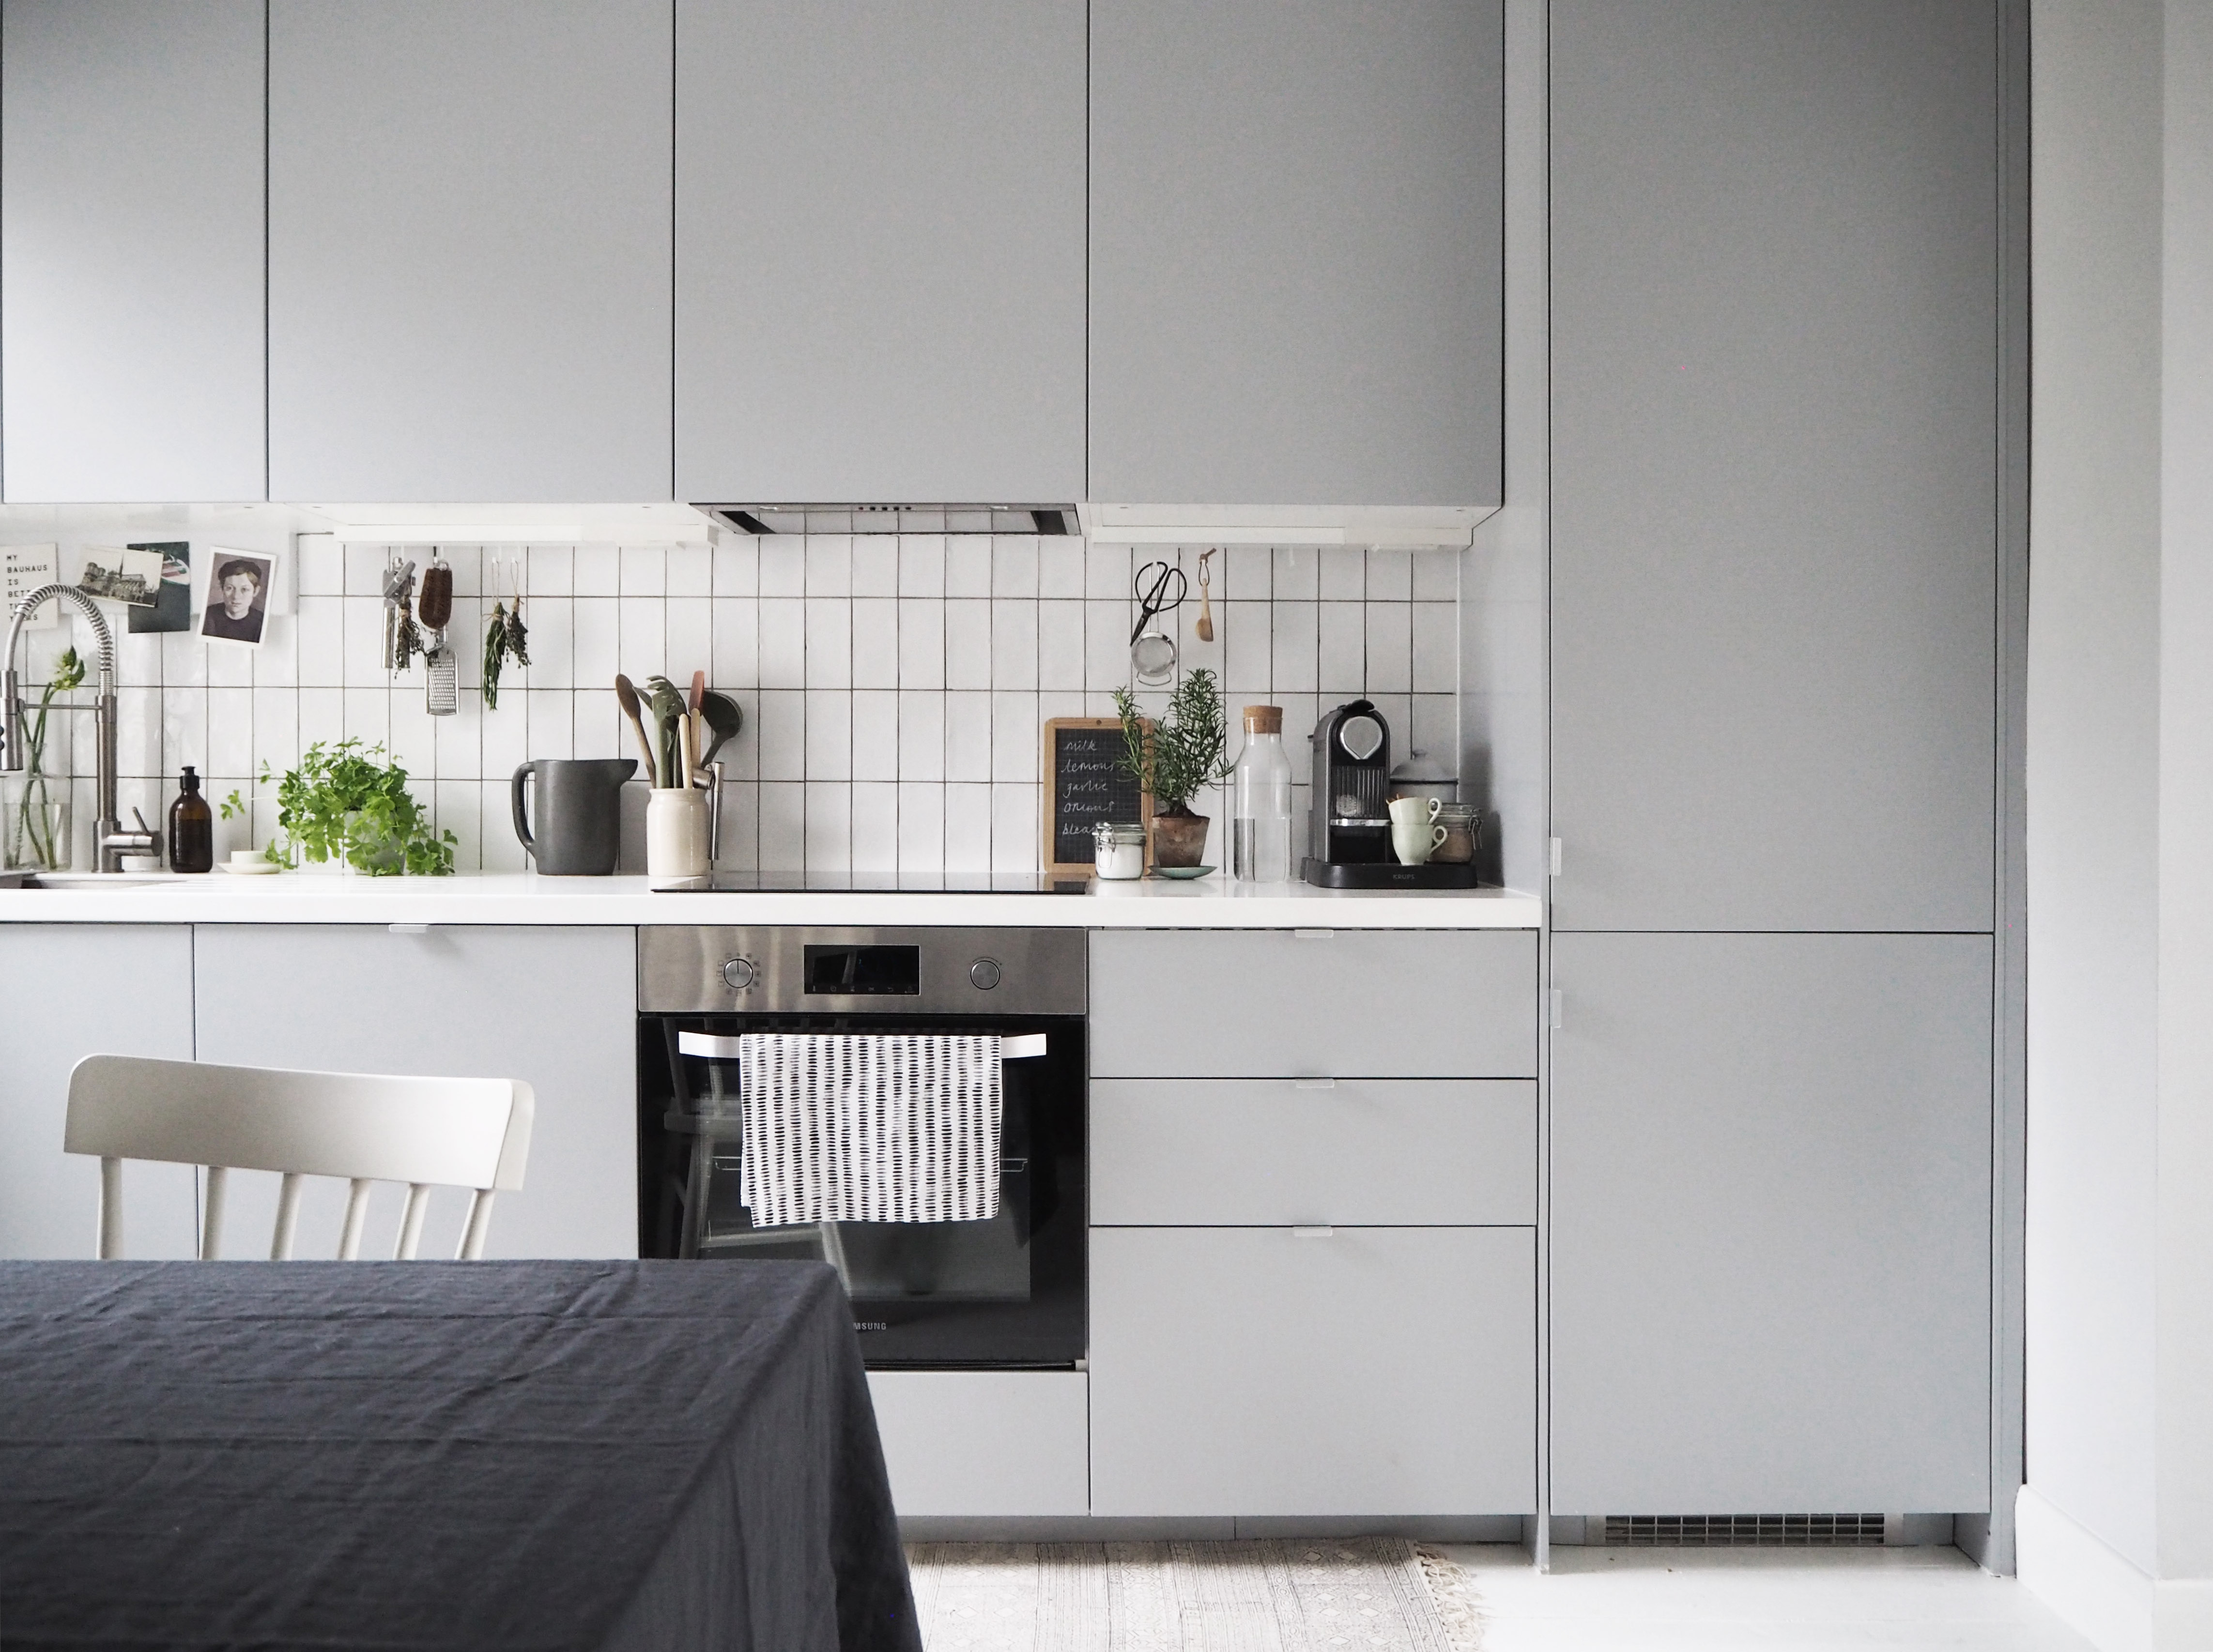 - My IKEA Kitchen Makeover - The Transformation - Cate St Hill